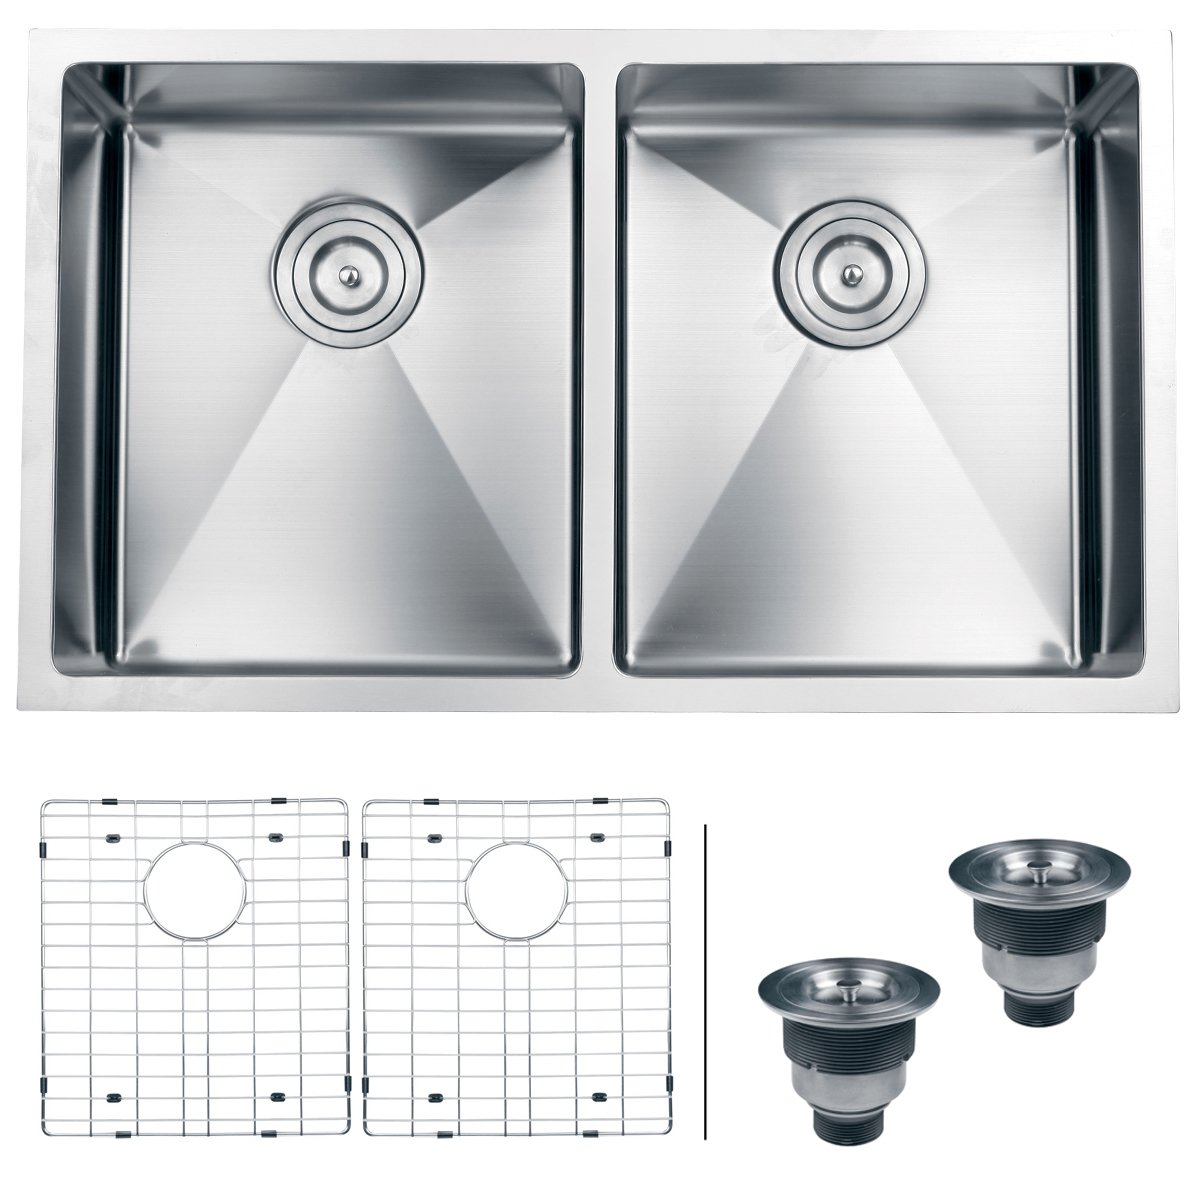 Ruvati Rvh7401 Undermount 16 Gauge Kitchen Sink Double Bowl 32 Stainless Steel Amazon Com